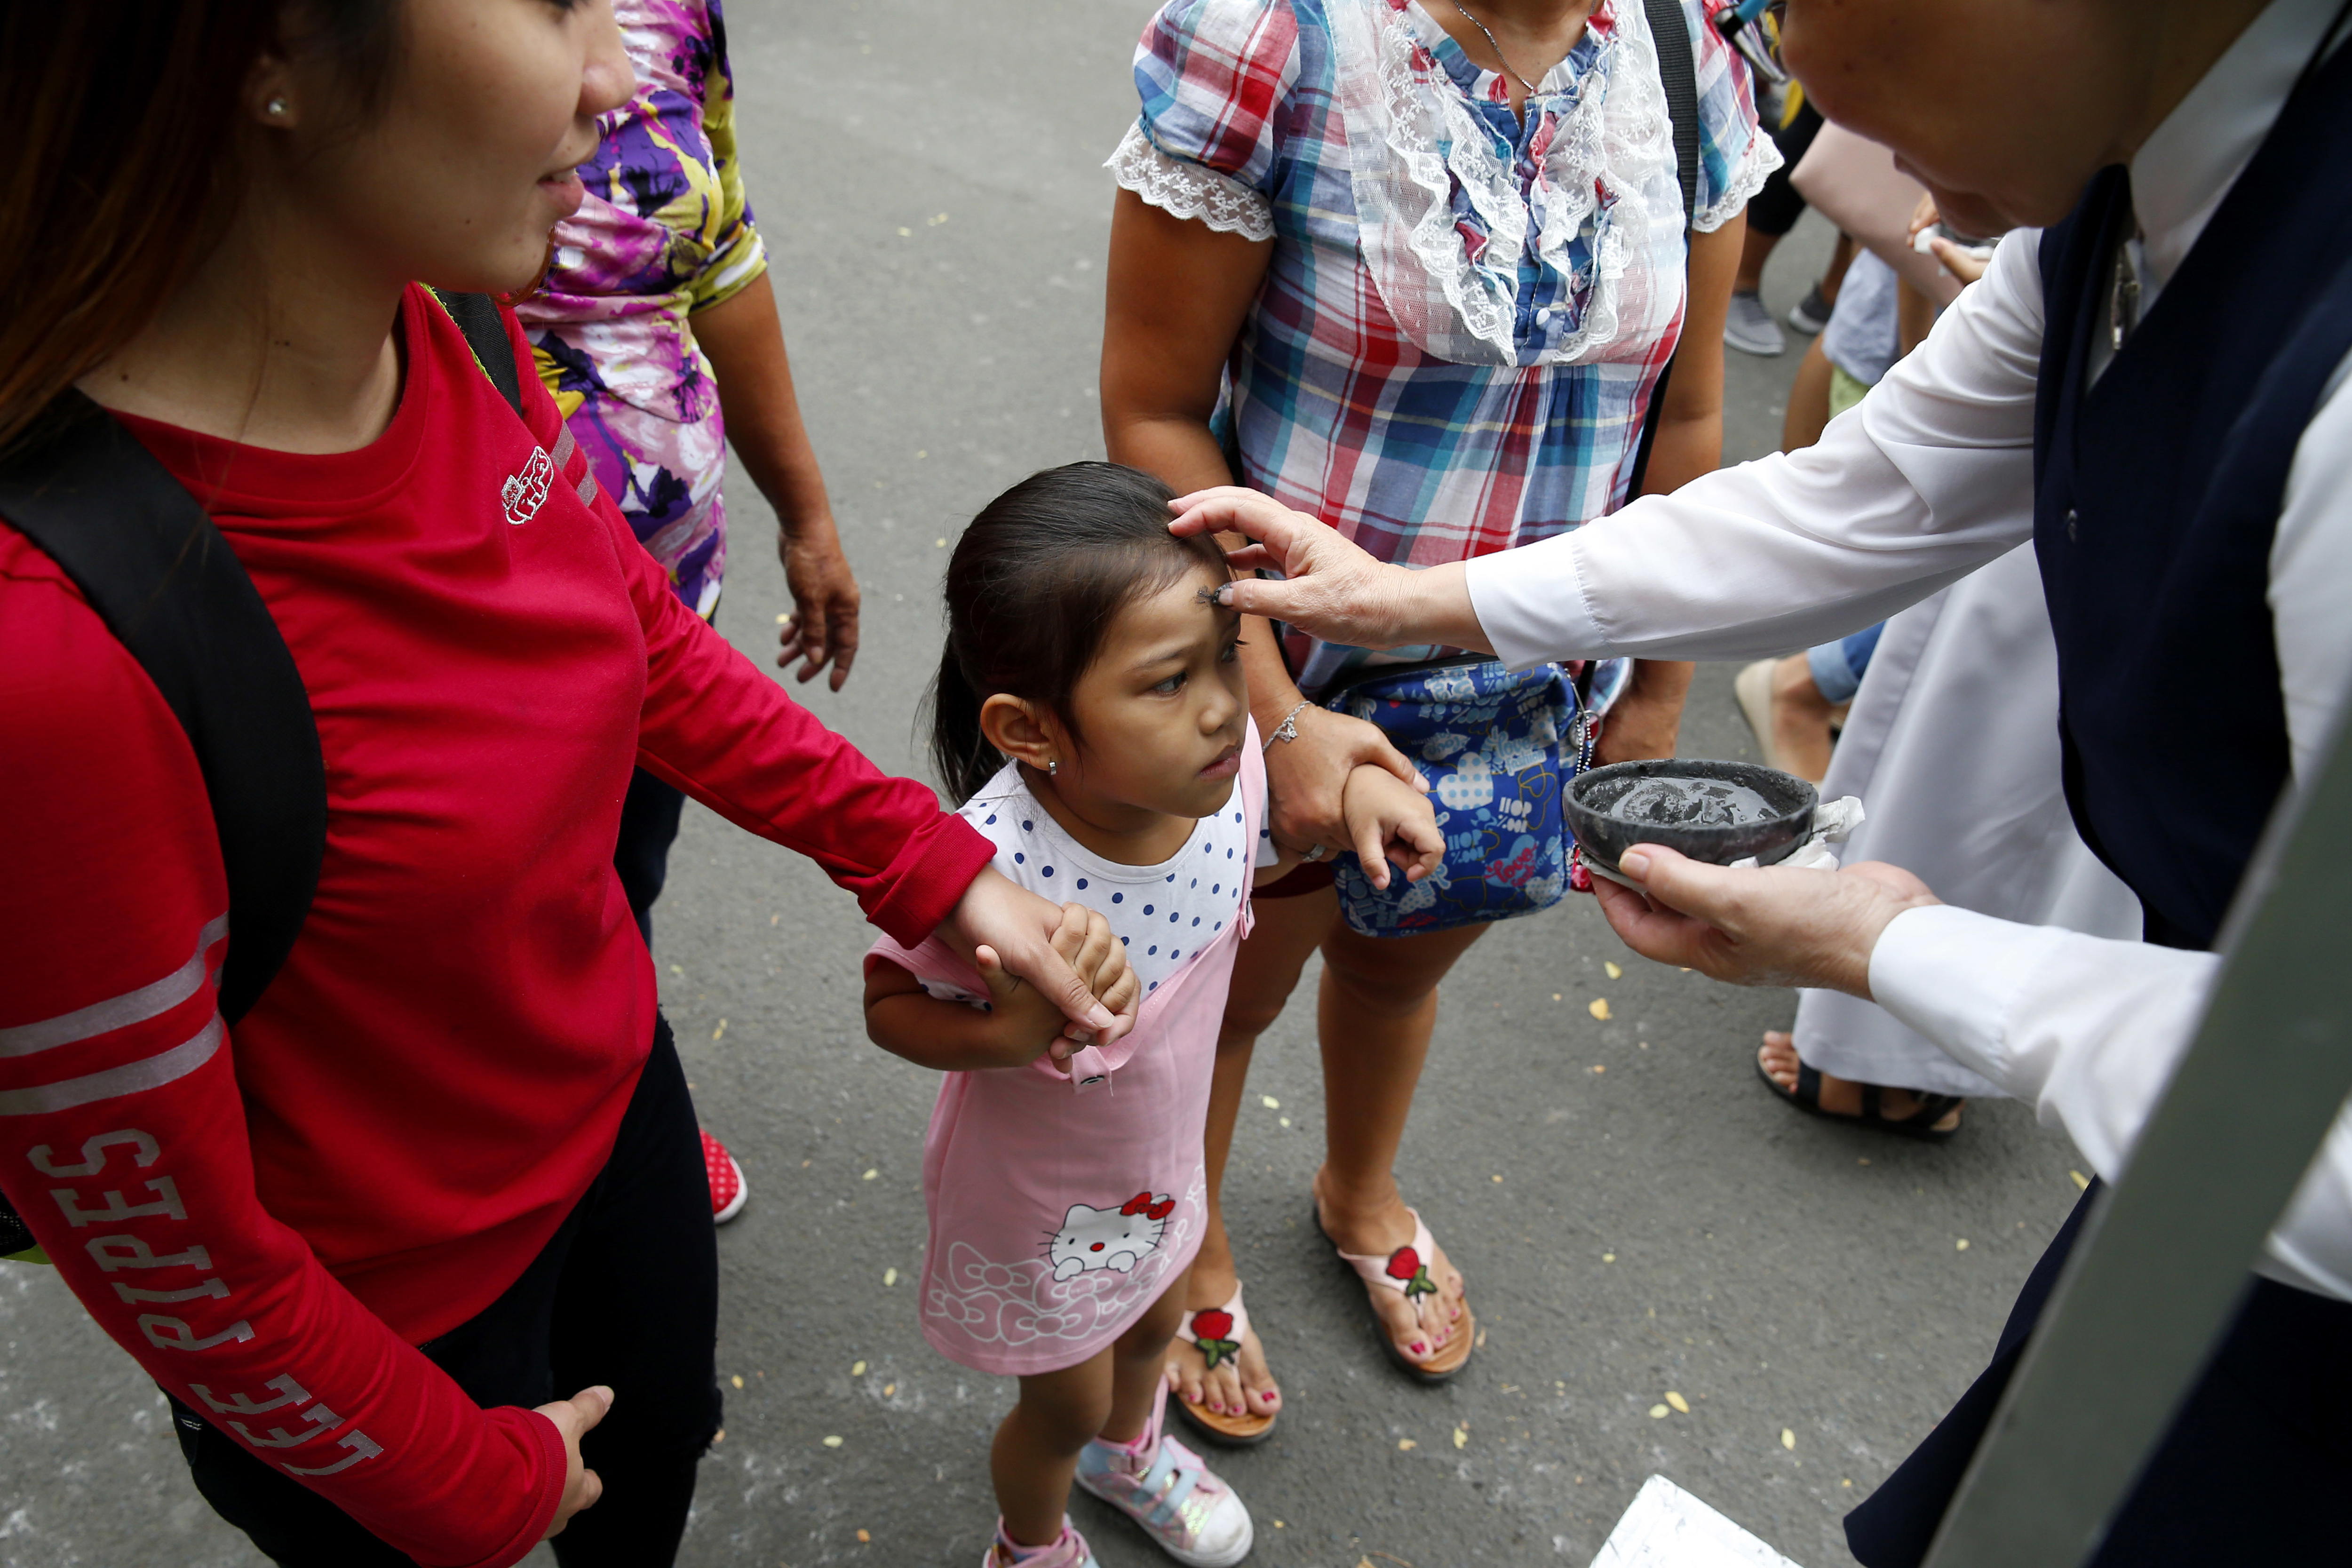 A child's forehead is rubbed with ash in observance of Ash Wednesday which ushers the season of Lent and also coincides with Valentine's Day celebration Wednesday, Feb. 14, 2018, in Paranaque southeast of Manila, Philippines. Ash Wednesday is observed all over the world by Roman Catholics to remind mankind that God created humans from dust. (AP Photo/Bullit Marquez)